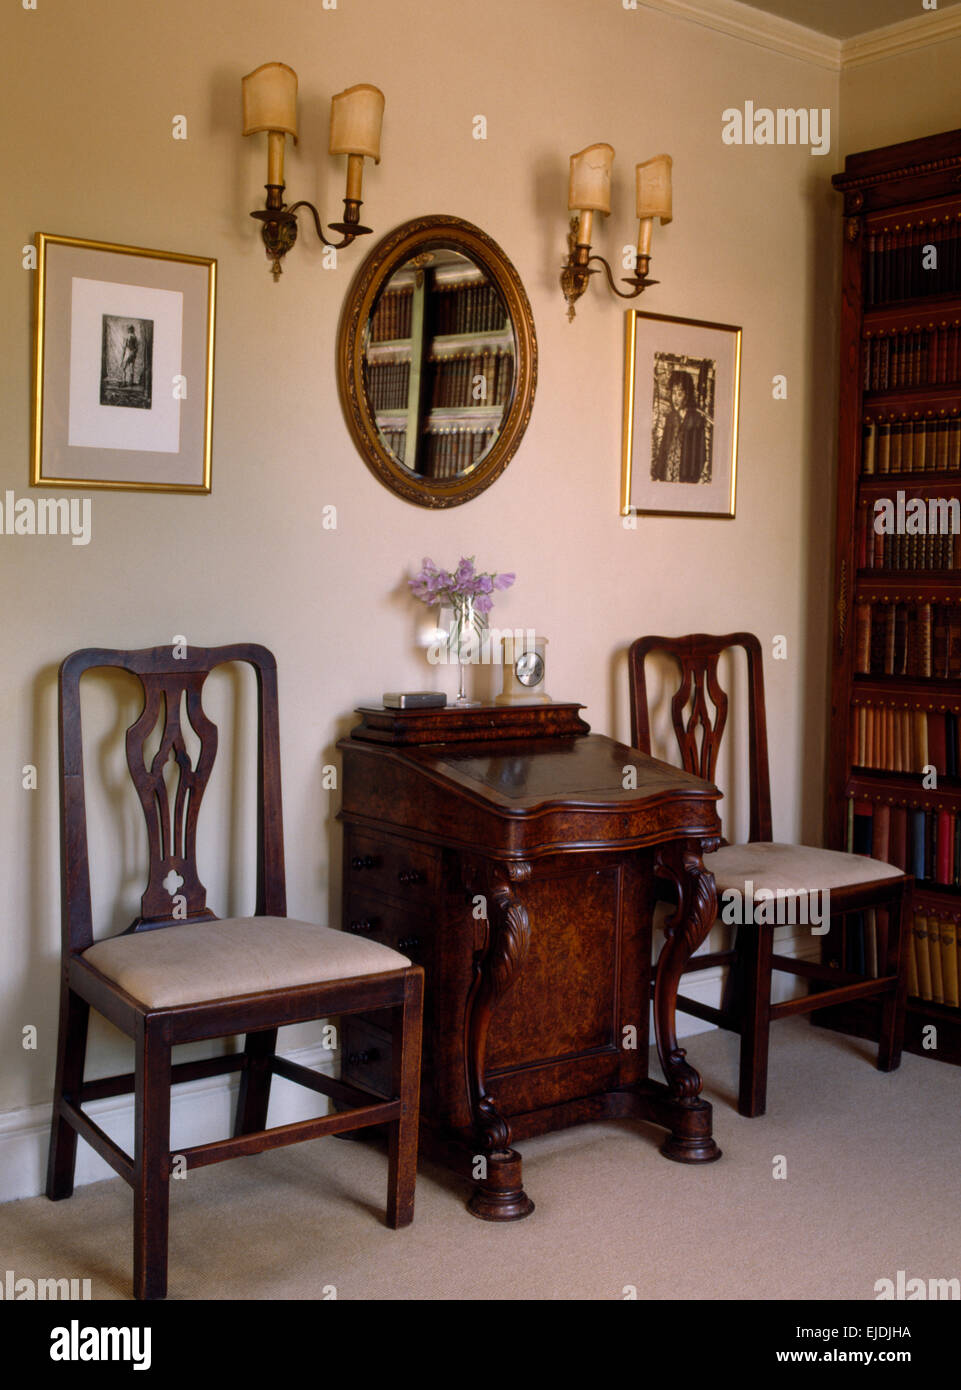 small dining chairs custom barber on either side of antique desk in old fashioned study